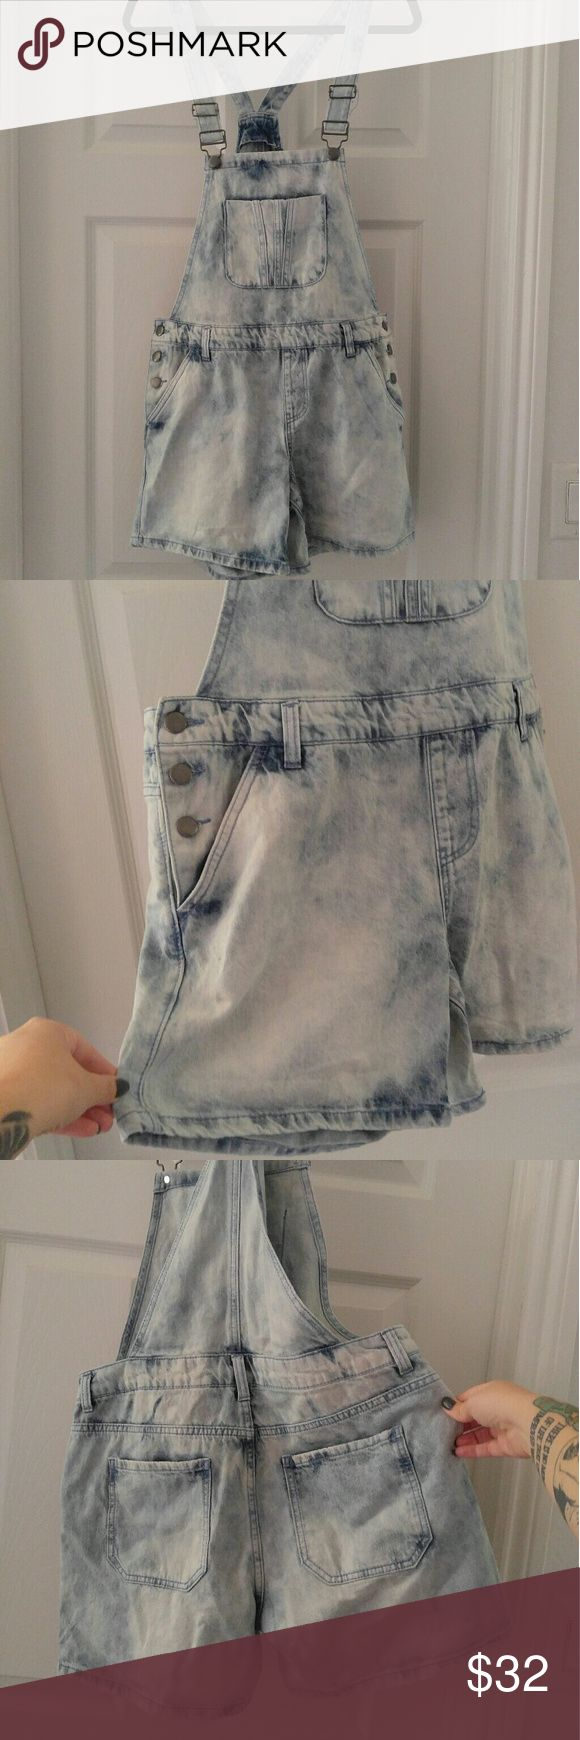 Acid Wash Shorts These are soooo cute but just too tight on my thighs.  Like brand new!  Says large but I feel better fit a medium.  Questions and offers welcomed. : ) Forever 21 Jeans Overalls